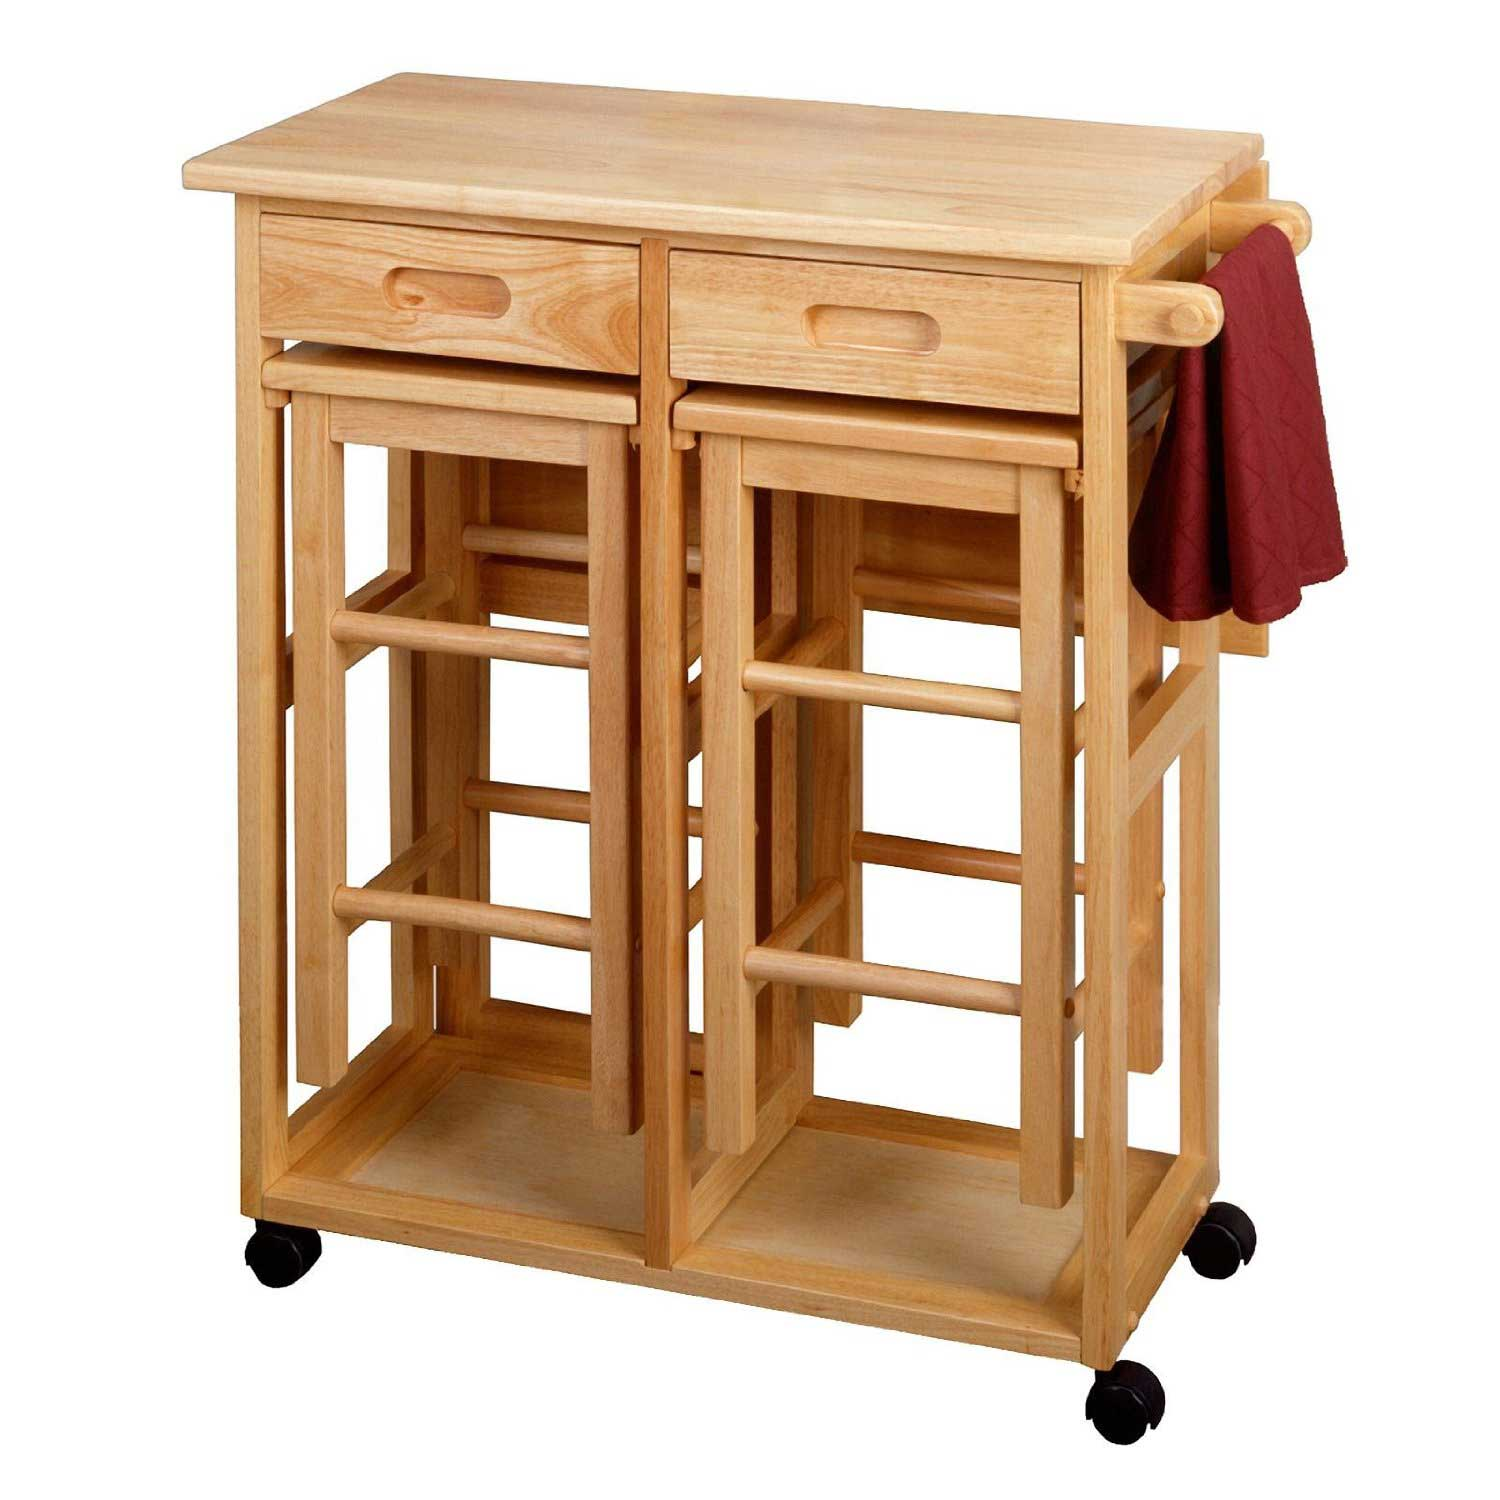 Space saver kitchen table set kitchen ideas for Kitchen bench set